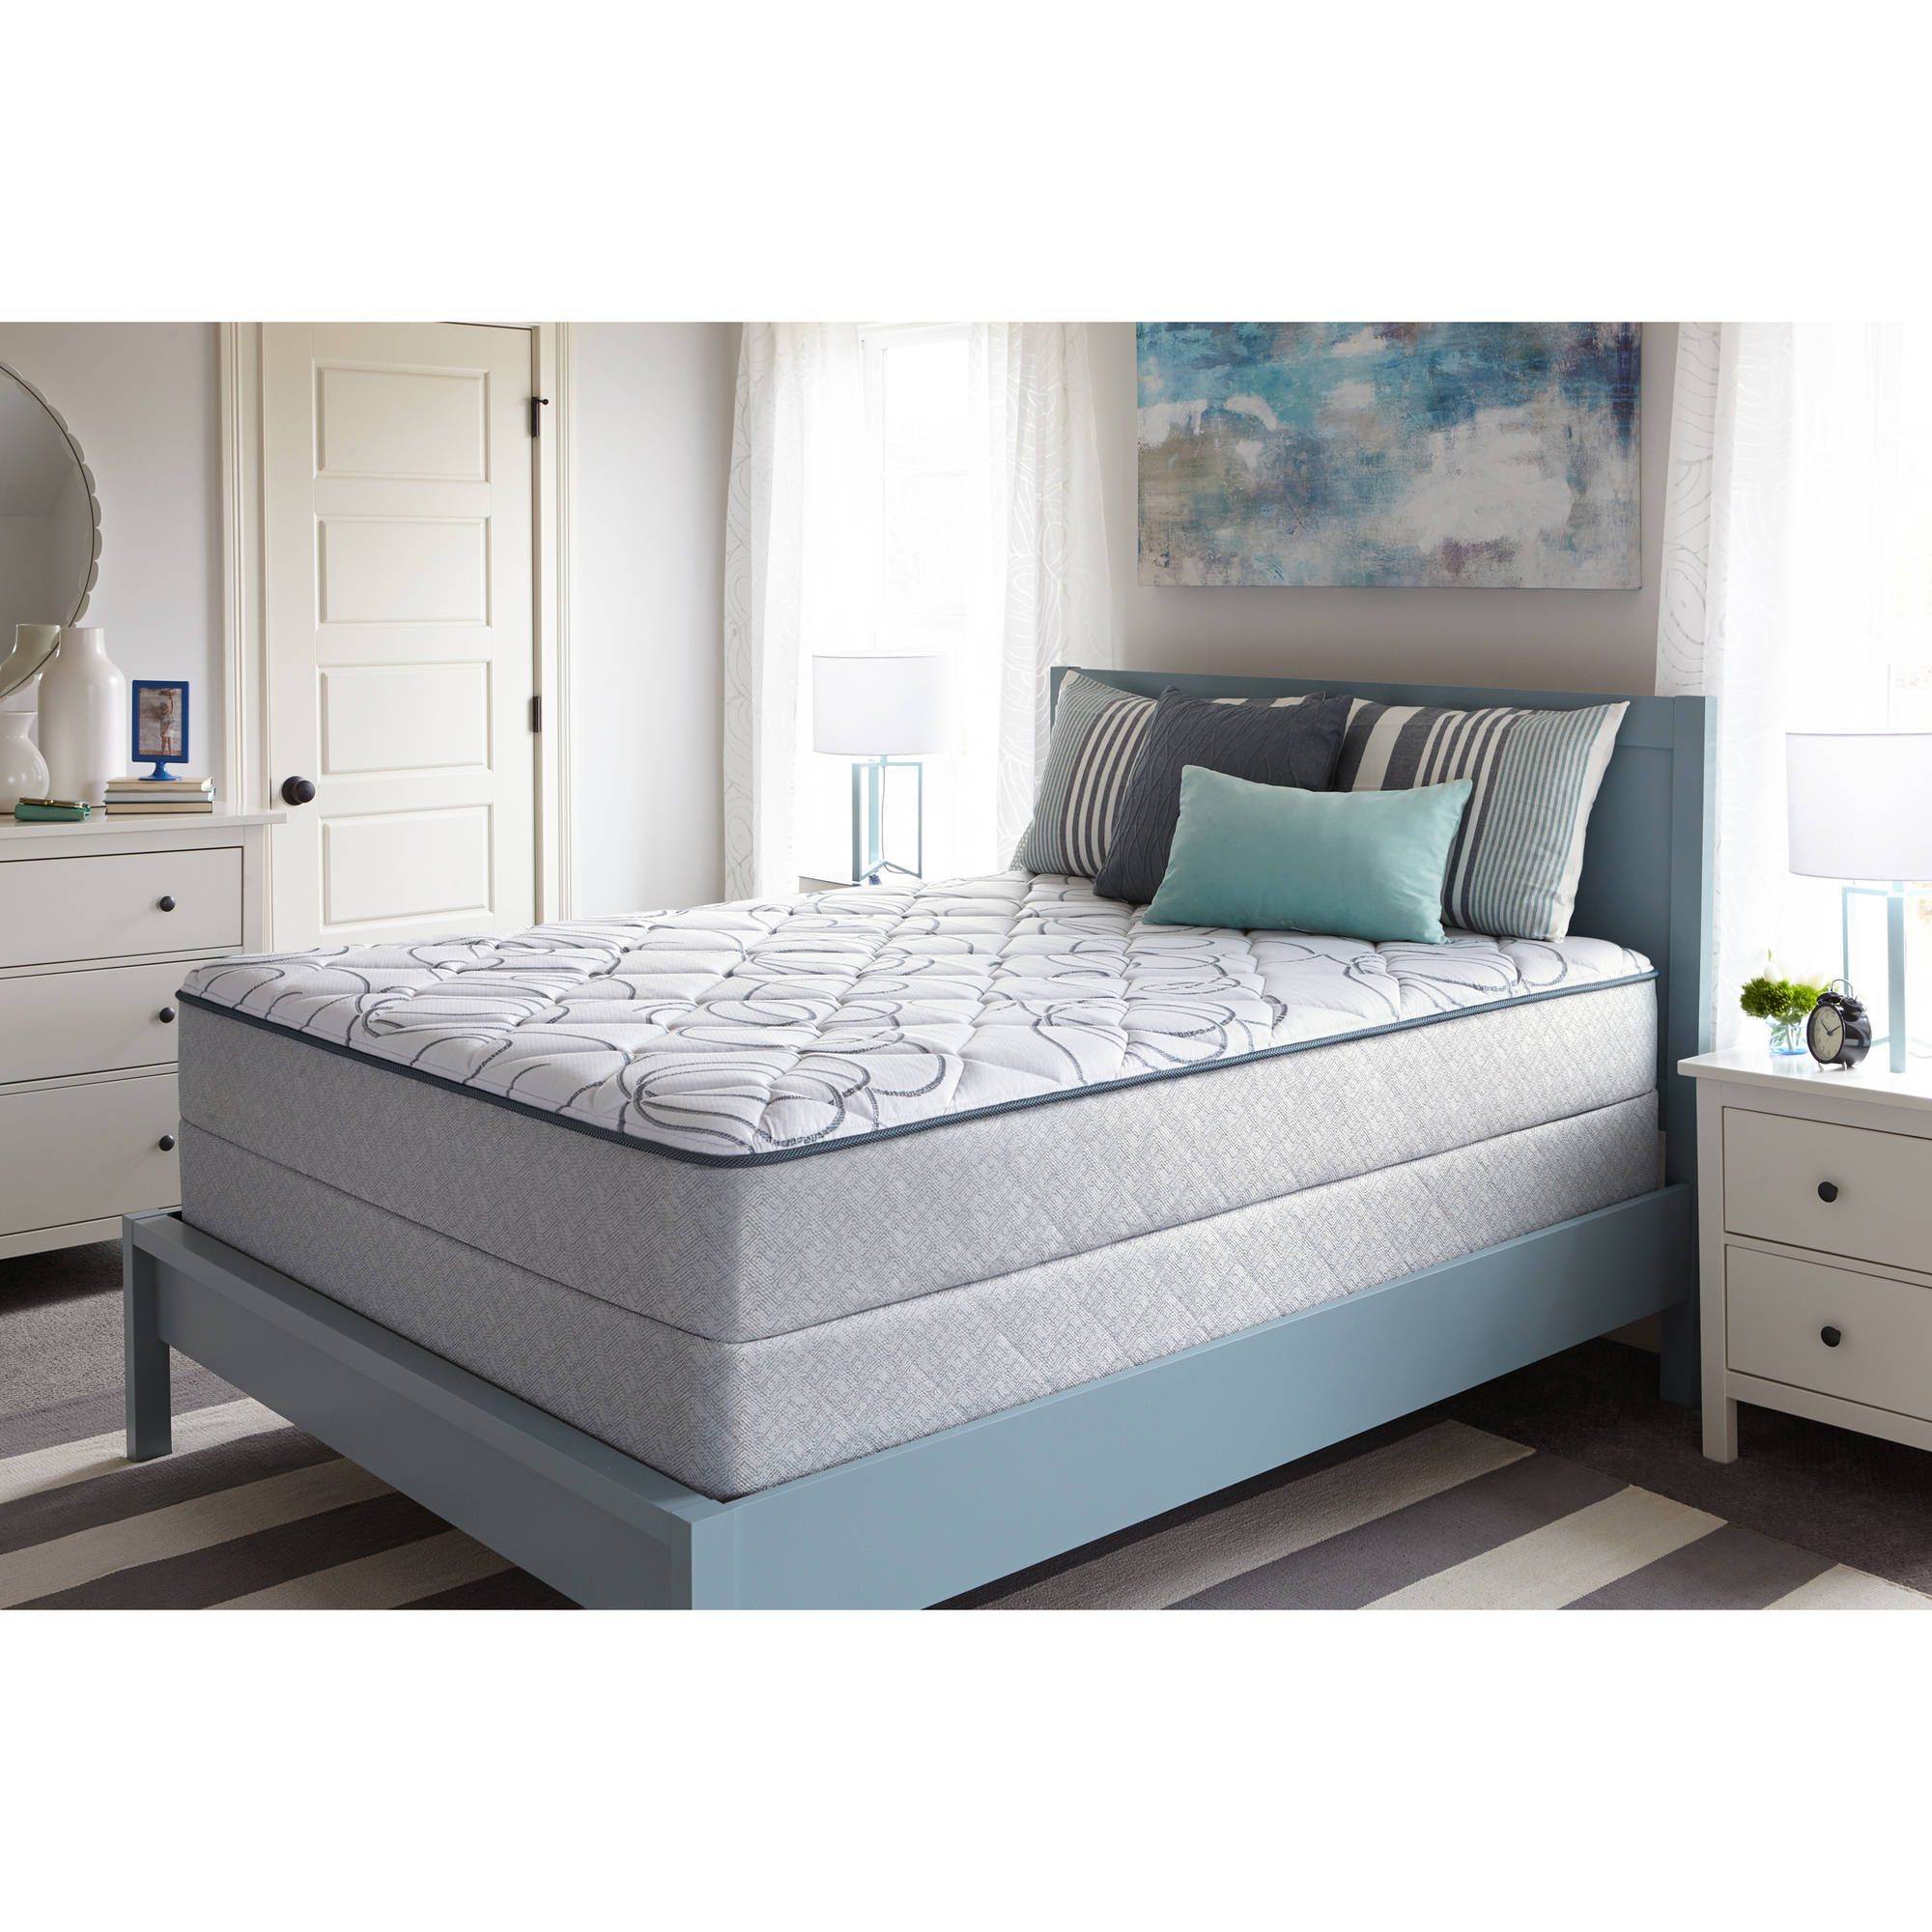 products and set boxf mattress crazy item number corsicana quilt foundation full